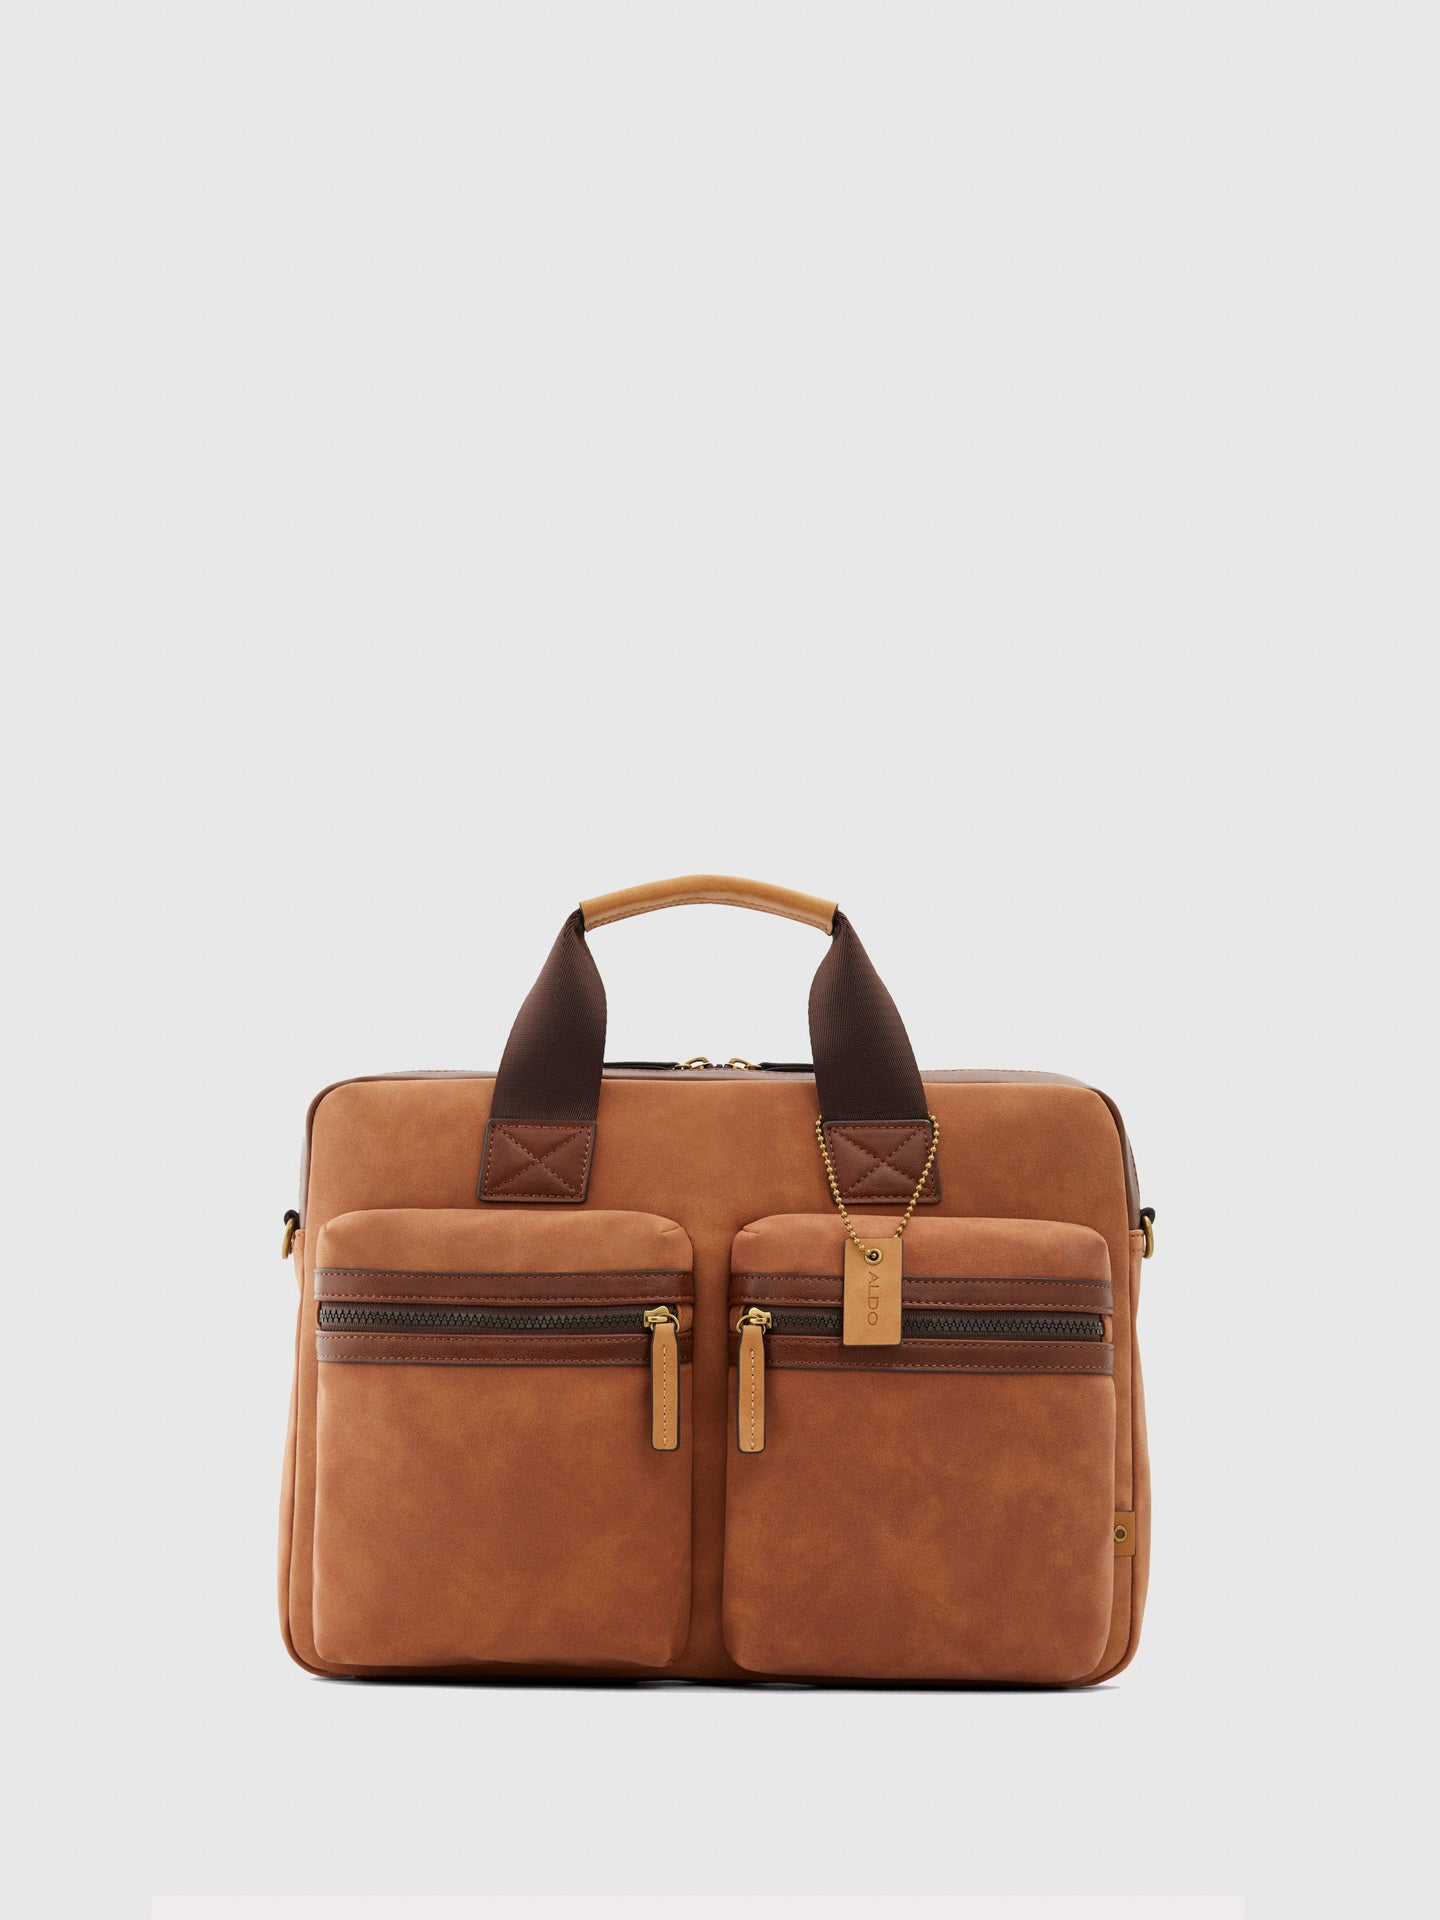 Aldo Brown Briefcase